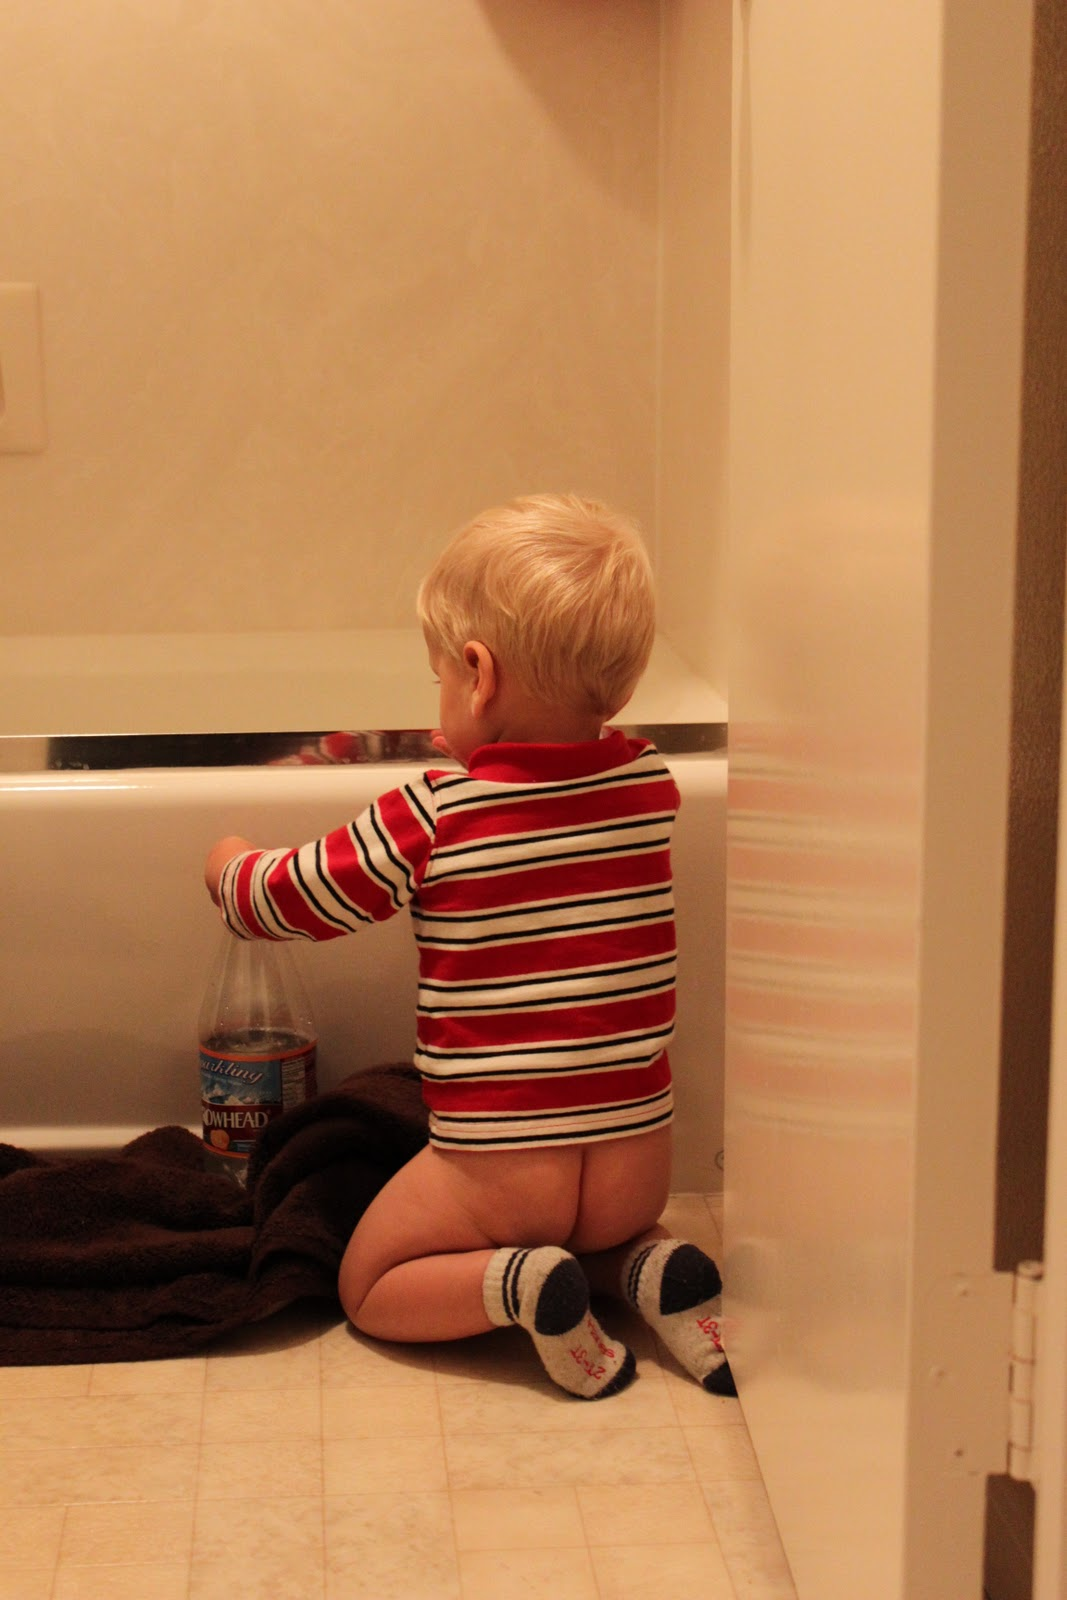 Potty Training Pics *nudie booty* - JustMommies Message Boards